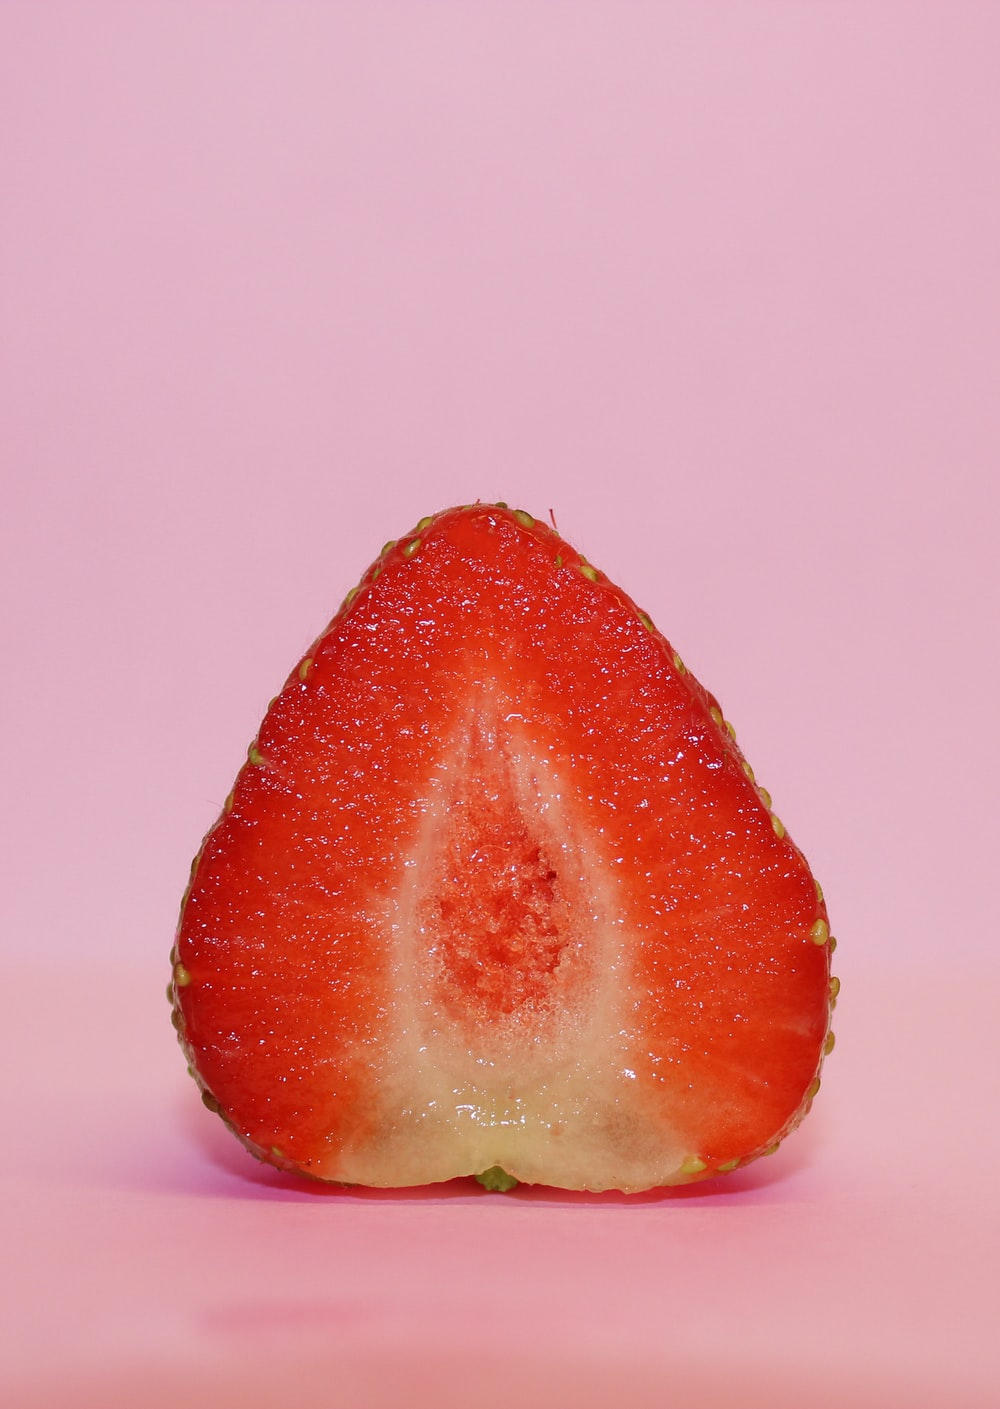 sliced strawberry